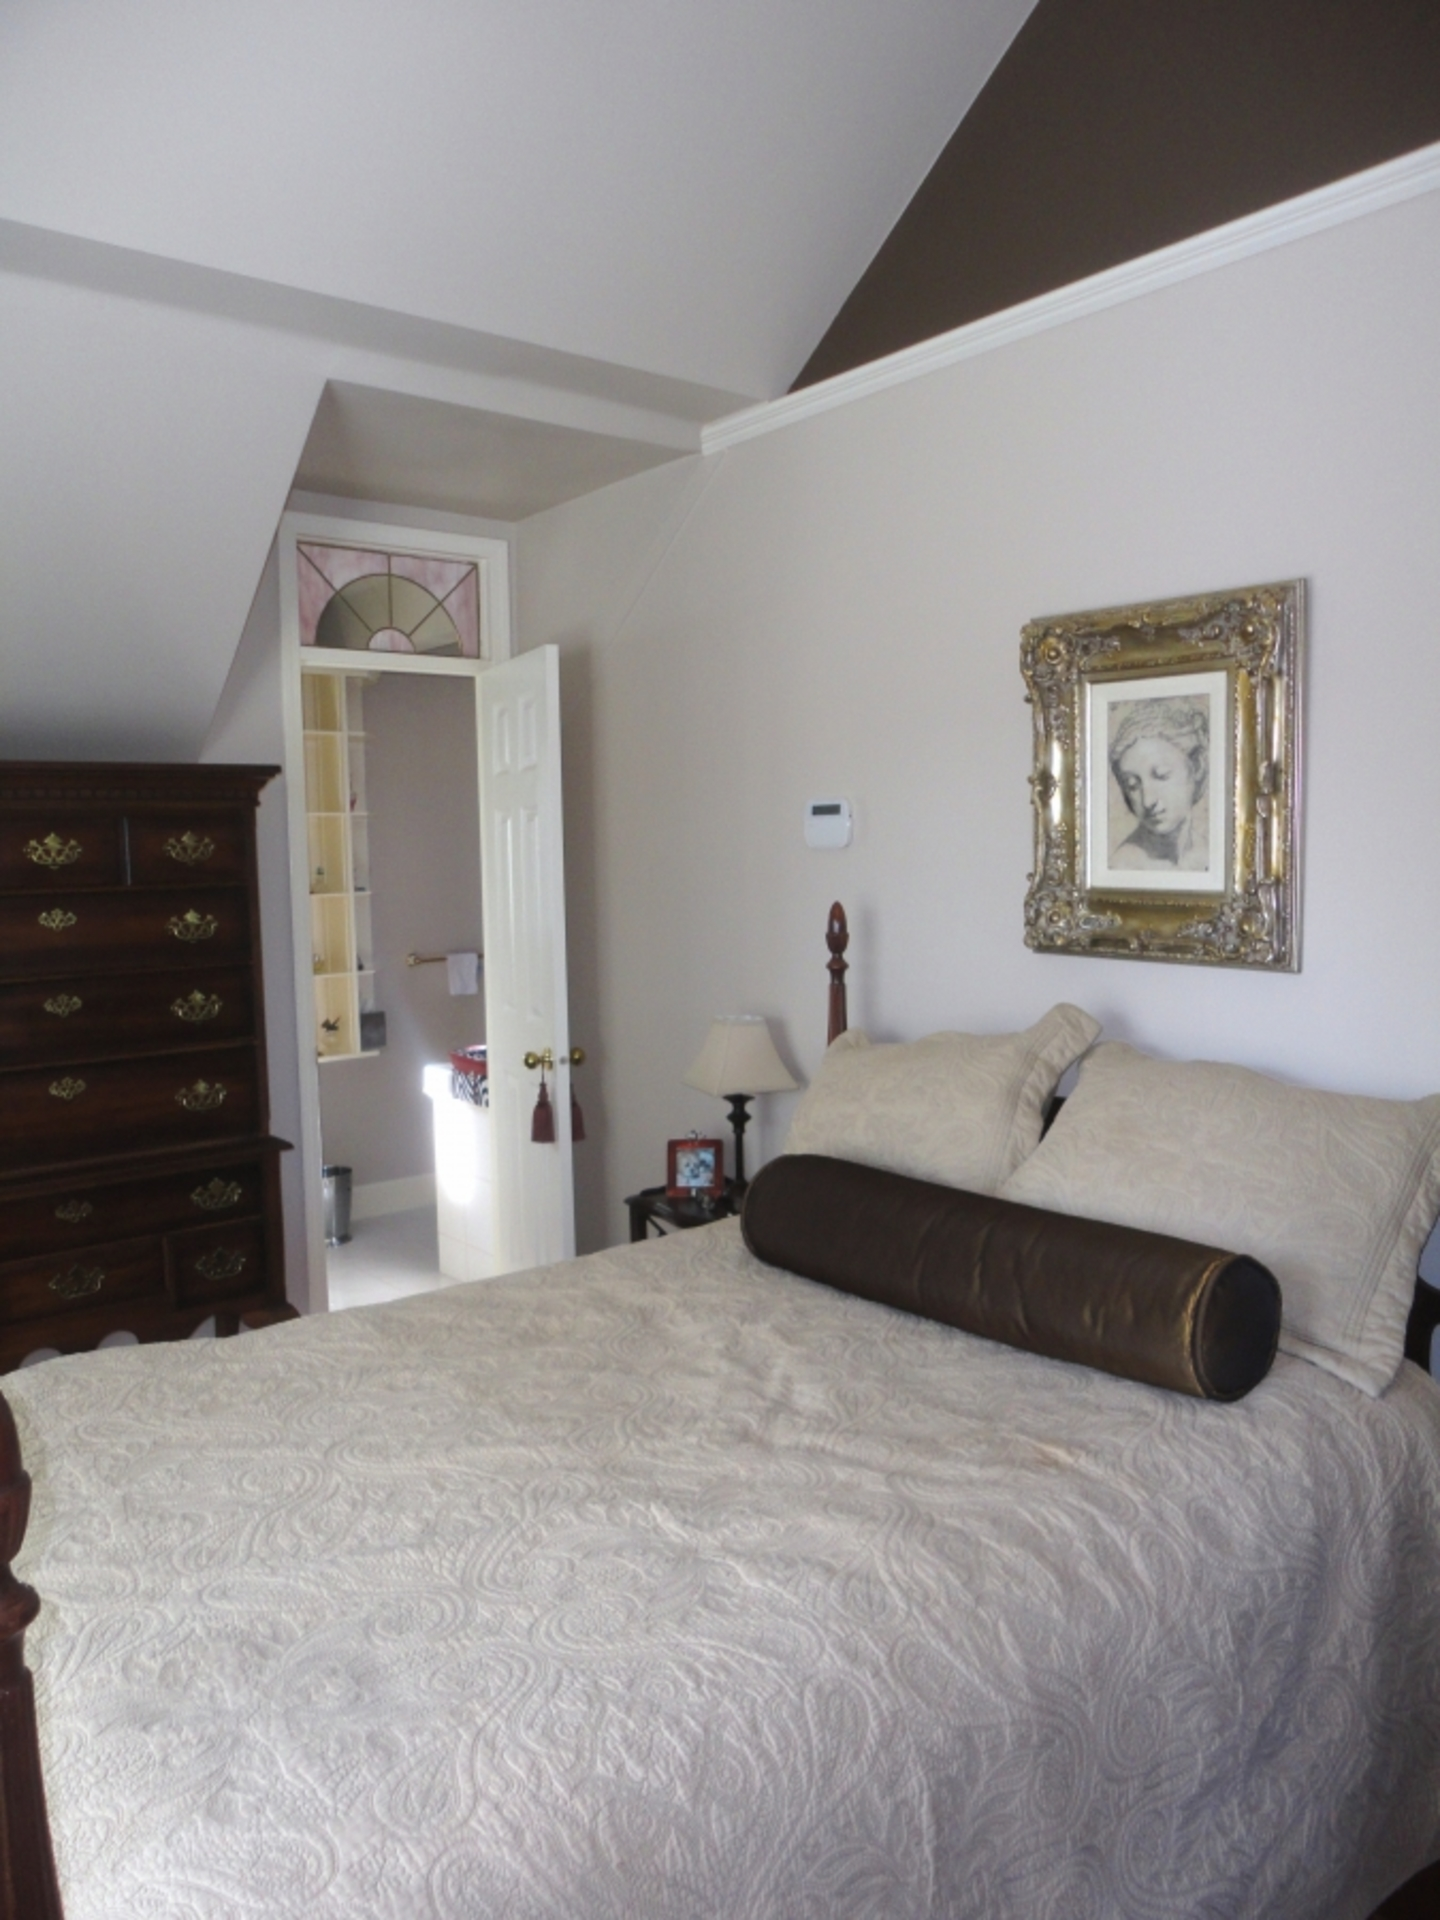 Bedroom at Address Upon Request, South Cambie, Vancouver West